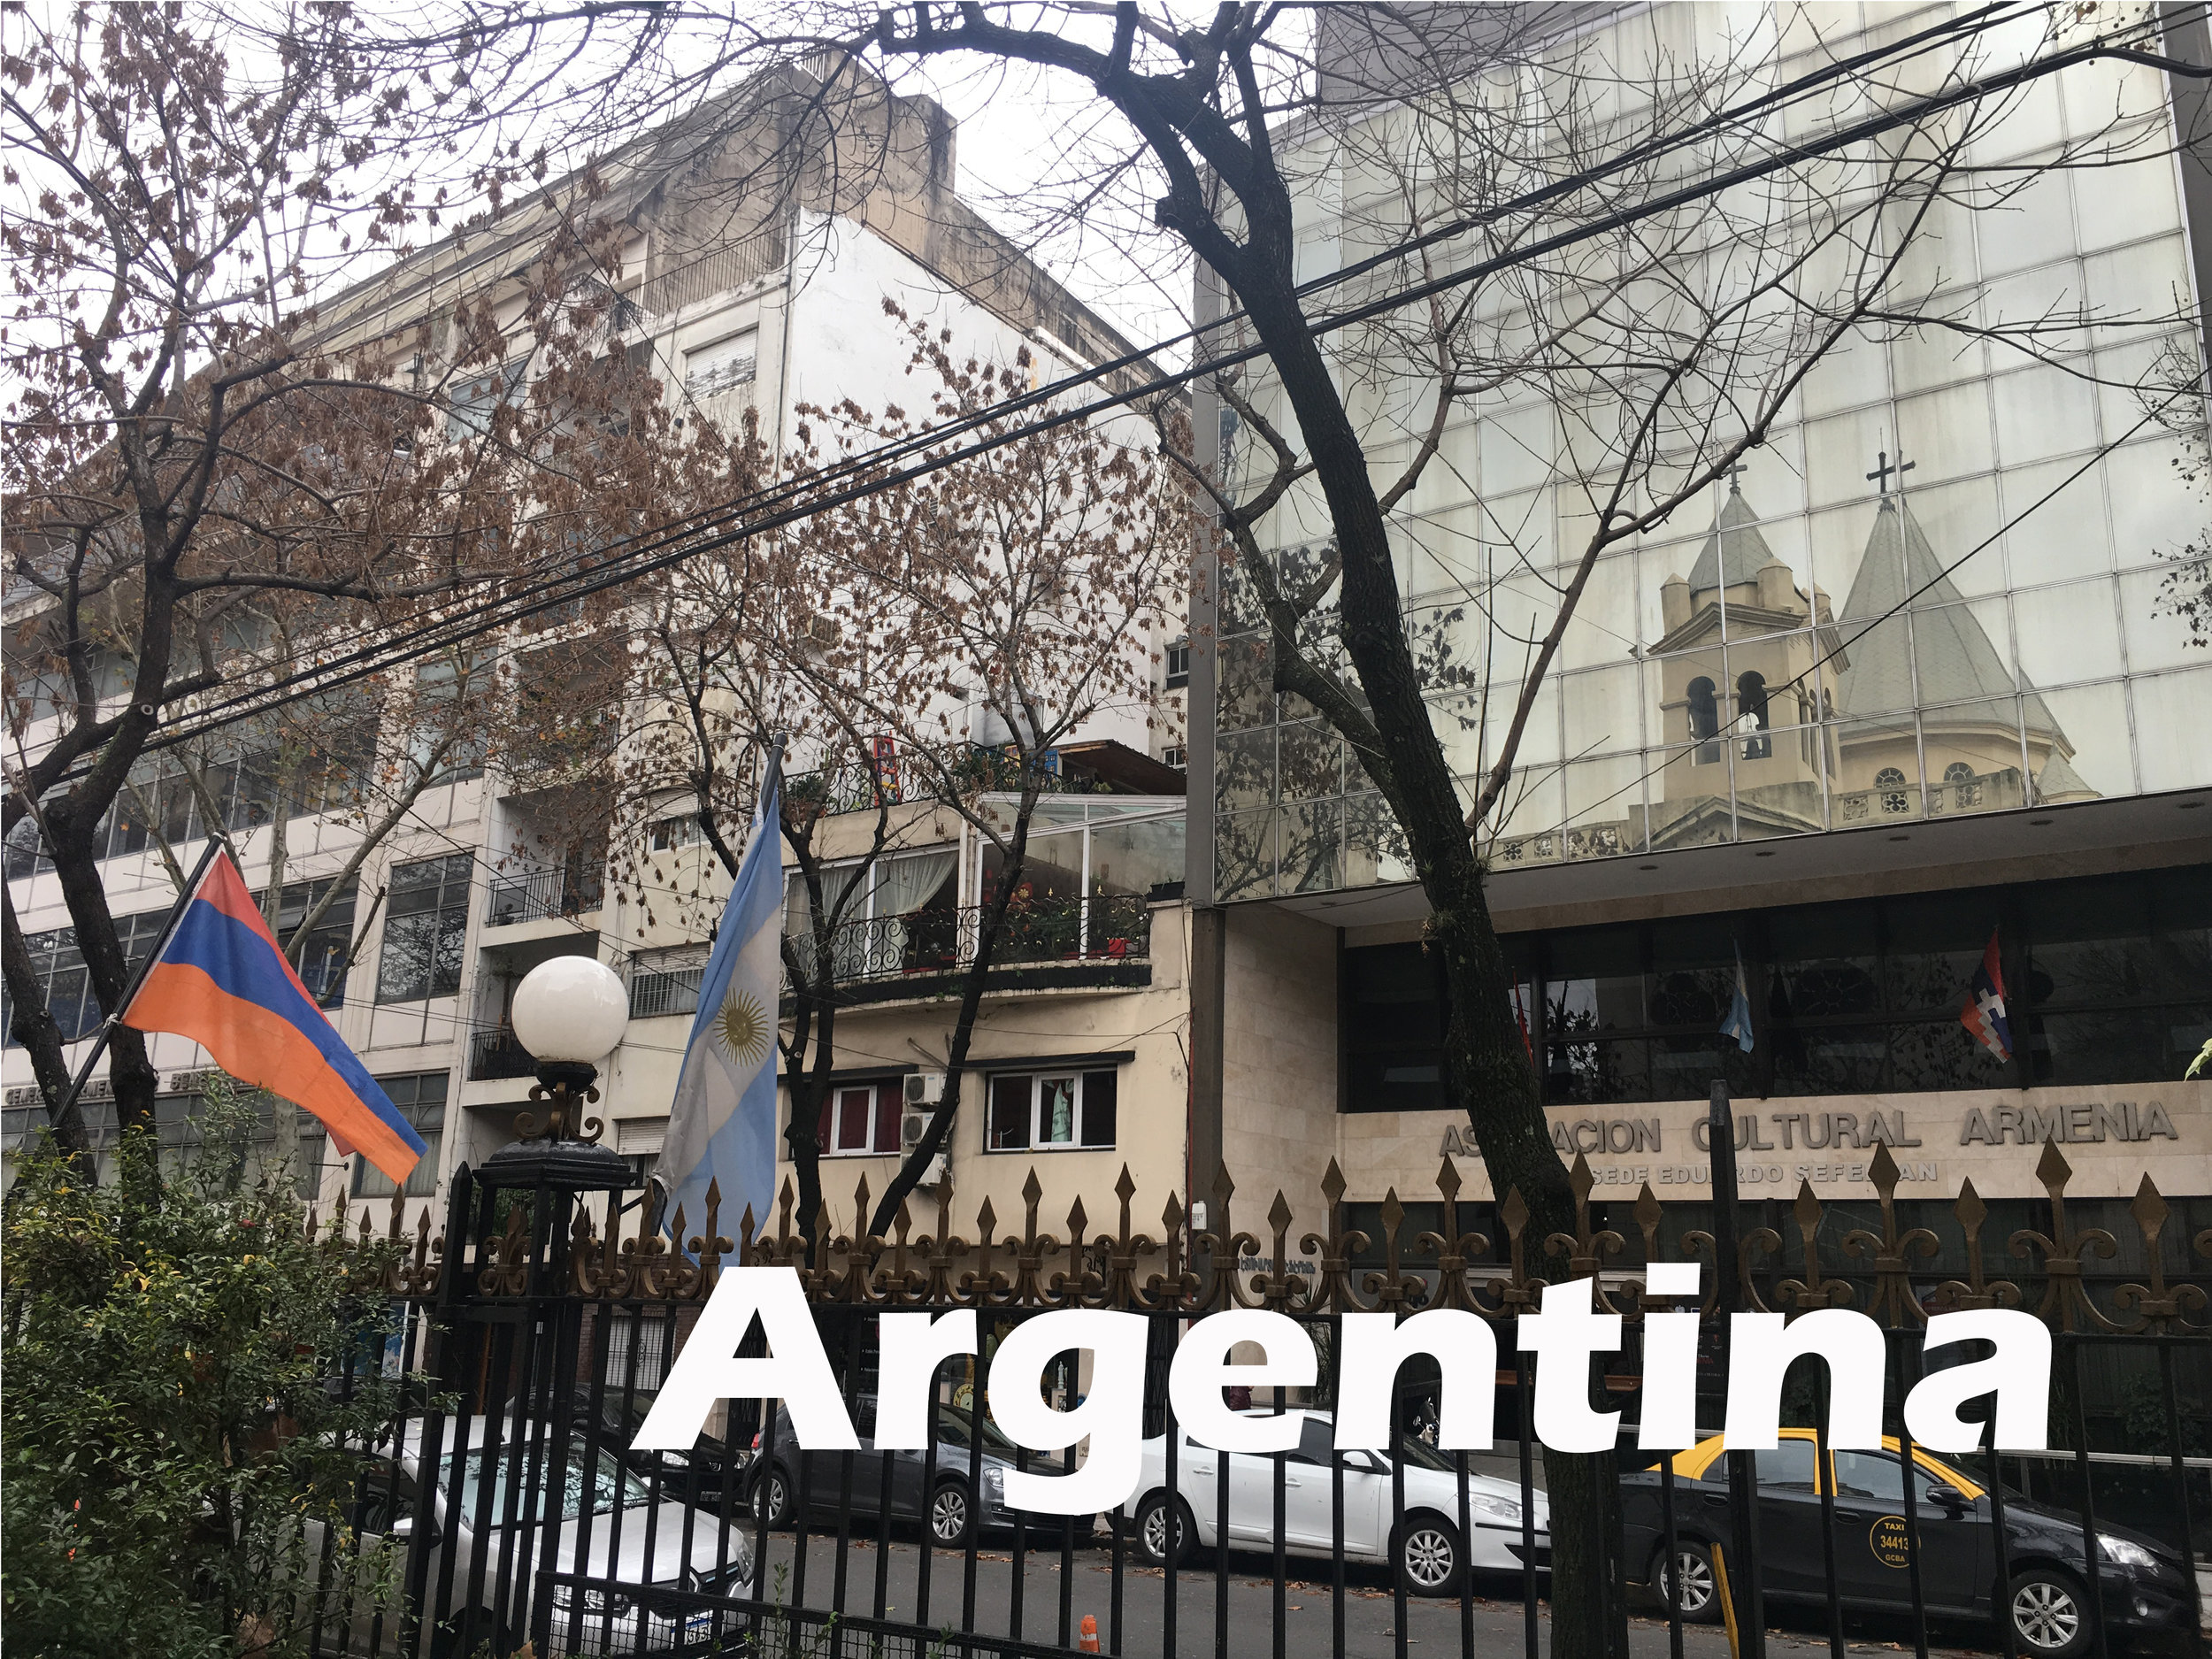 Buenos Aires. Photo Credit: Hratch Tchilingirian